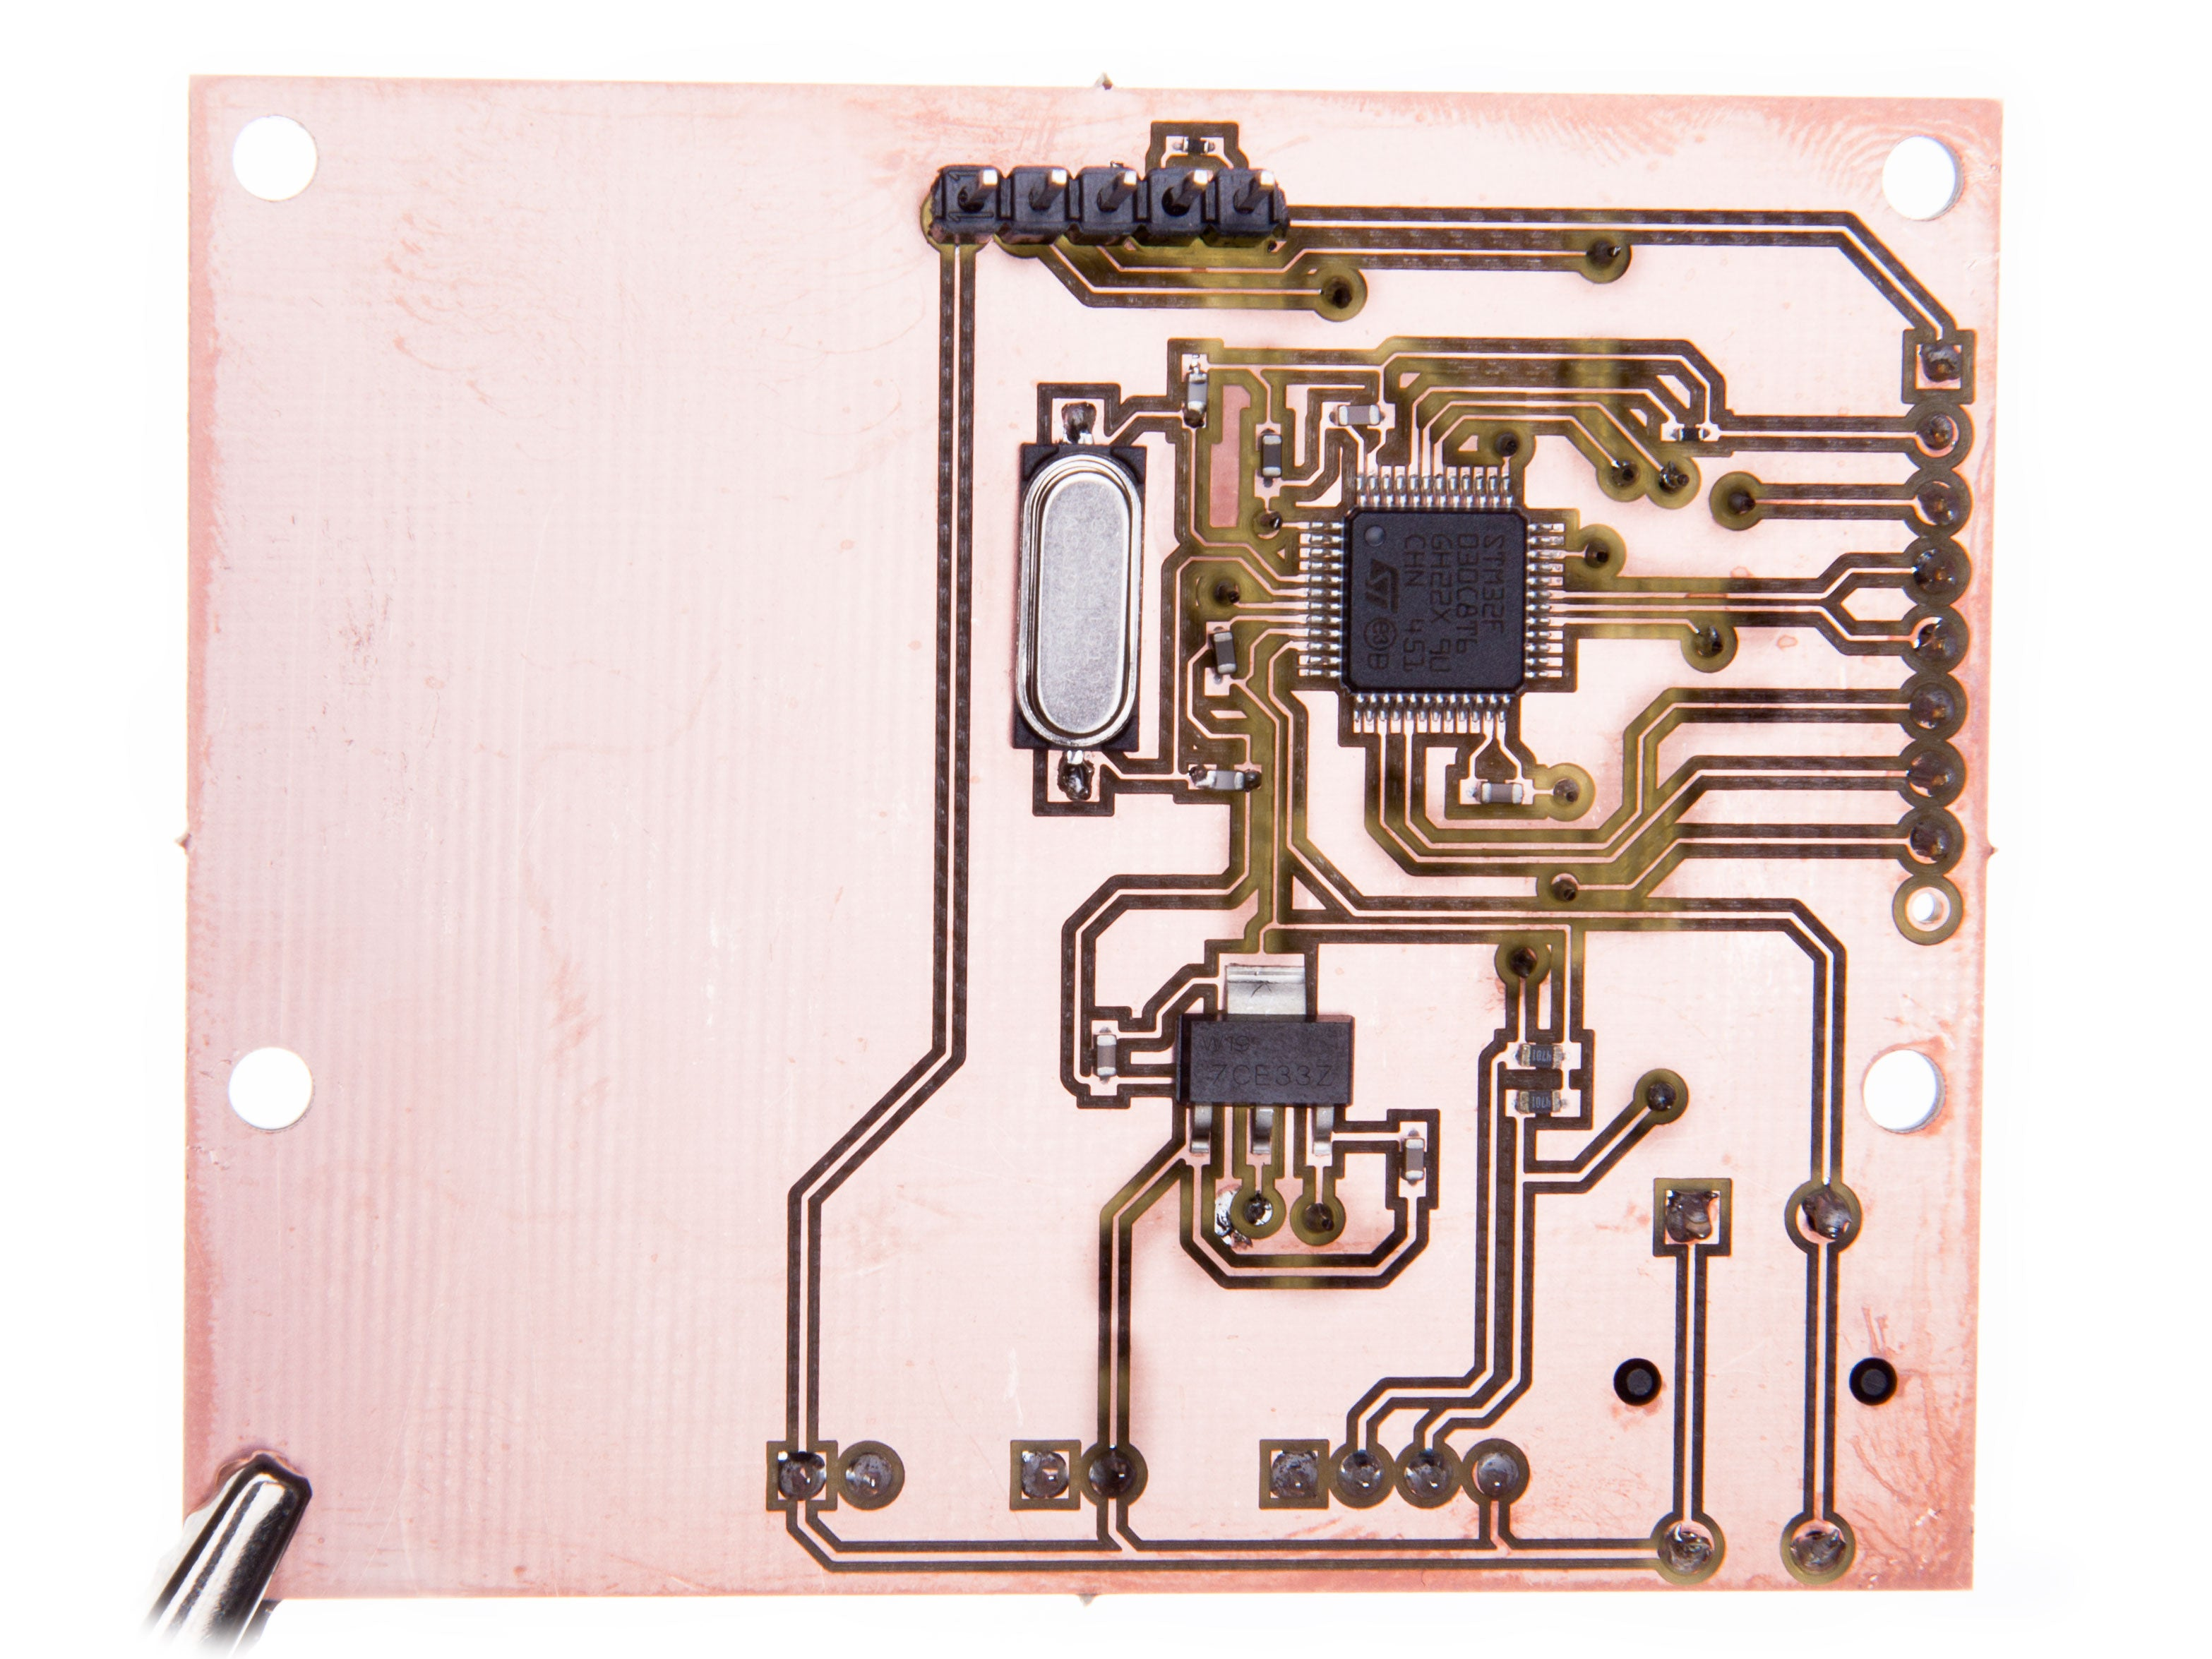 LIDAR board with soldered TTH components